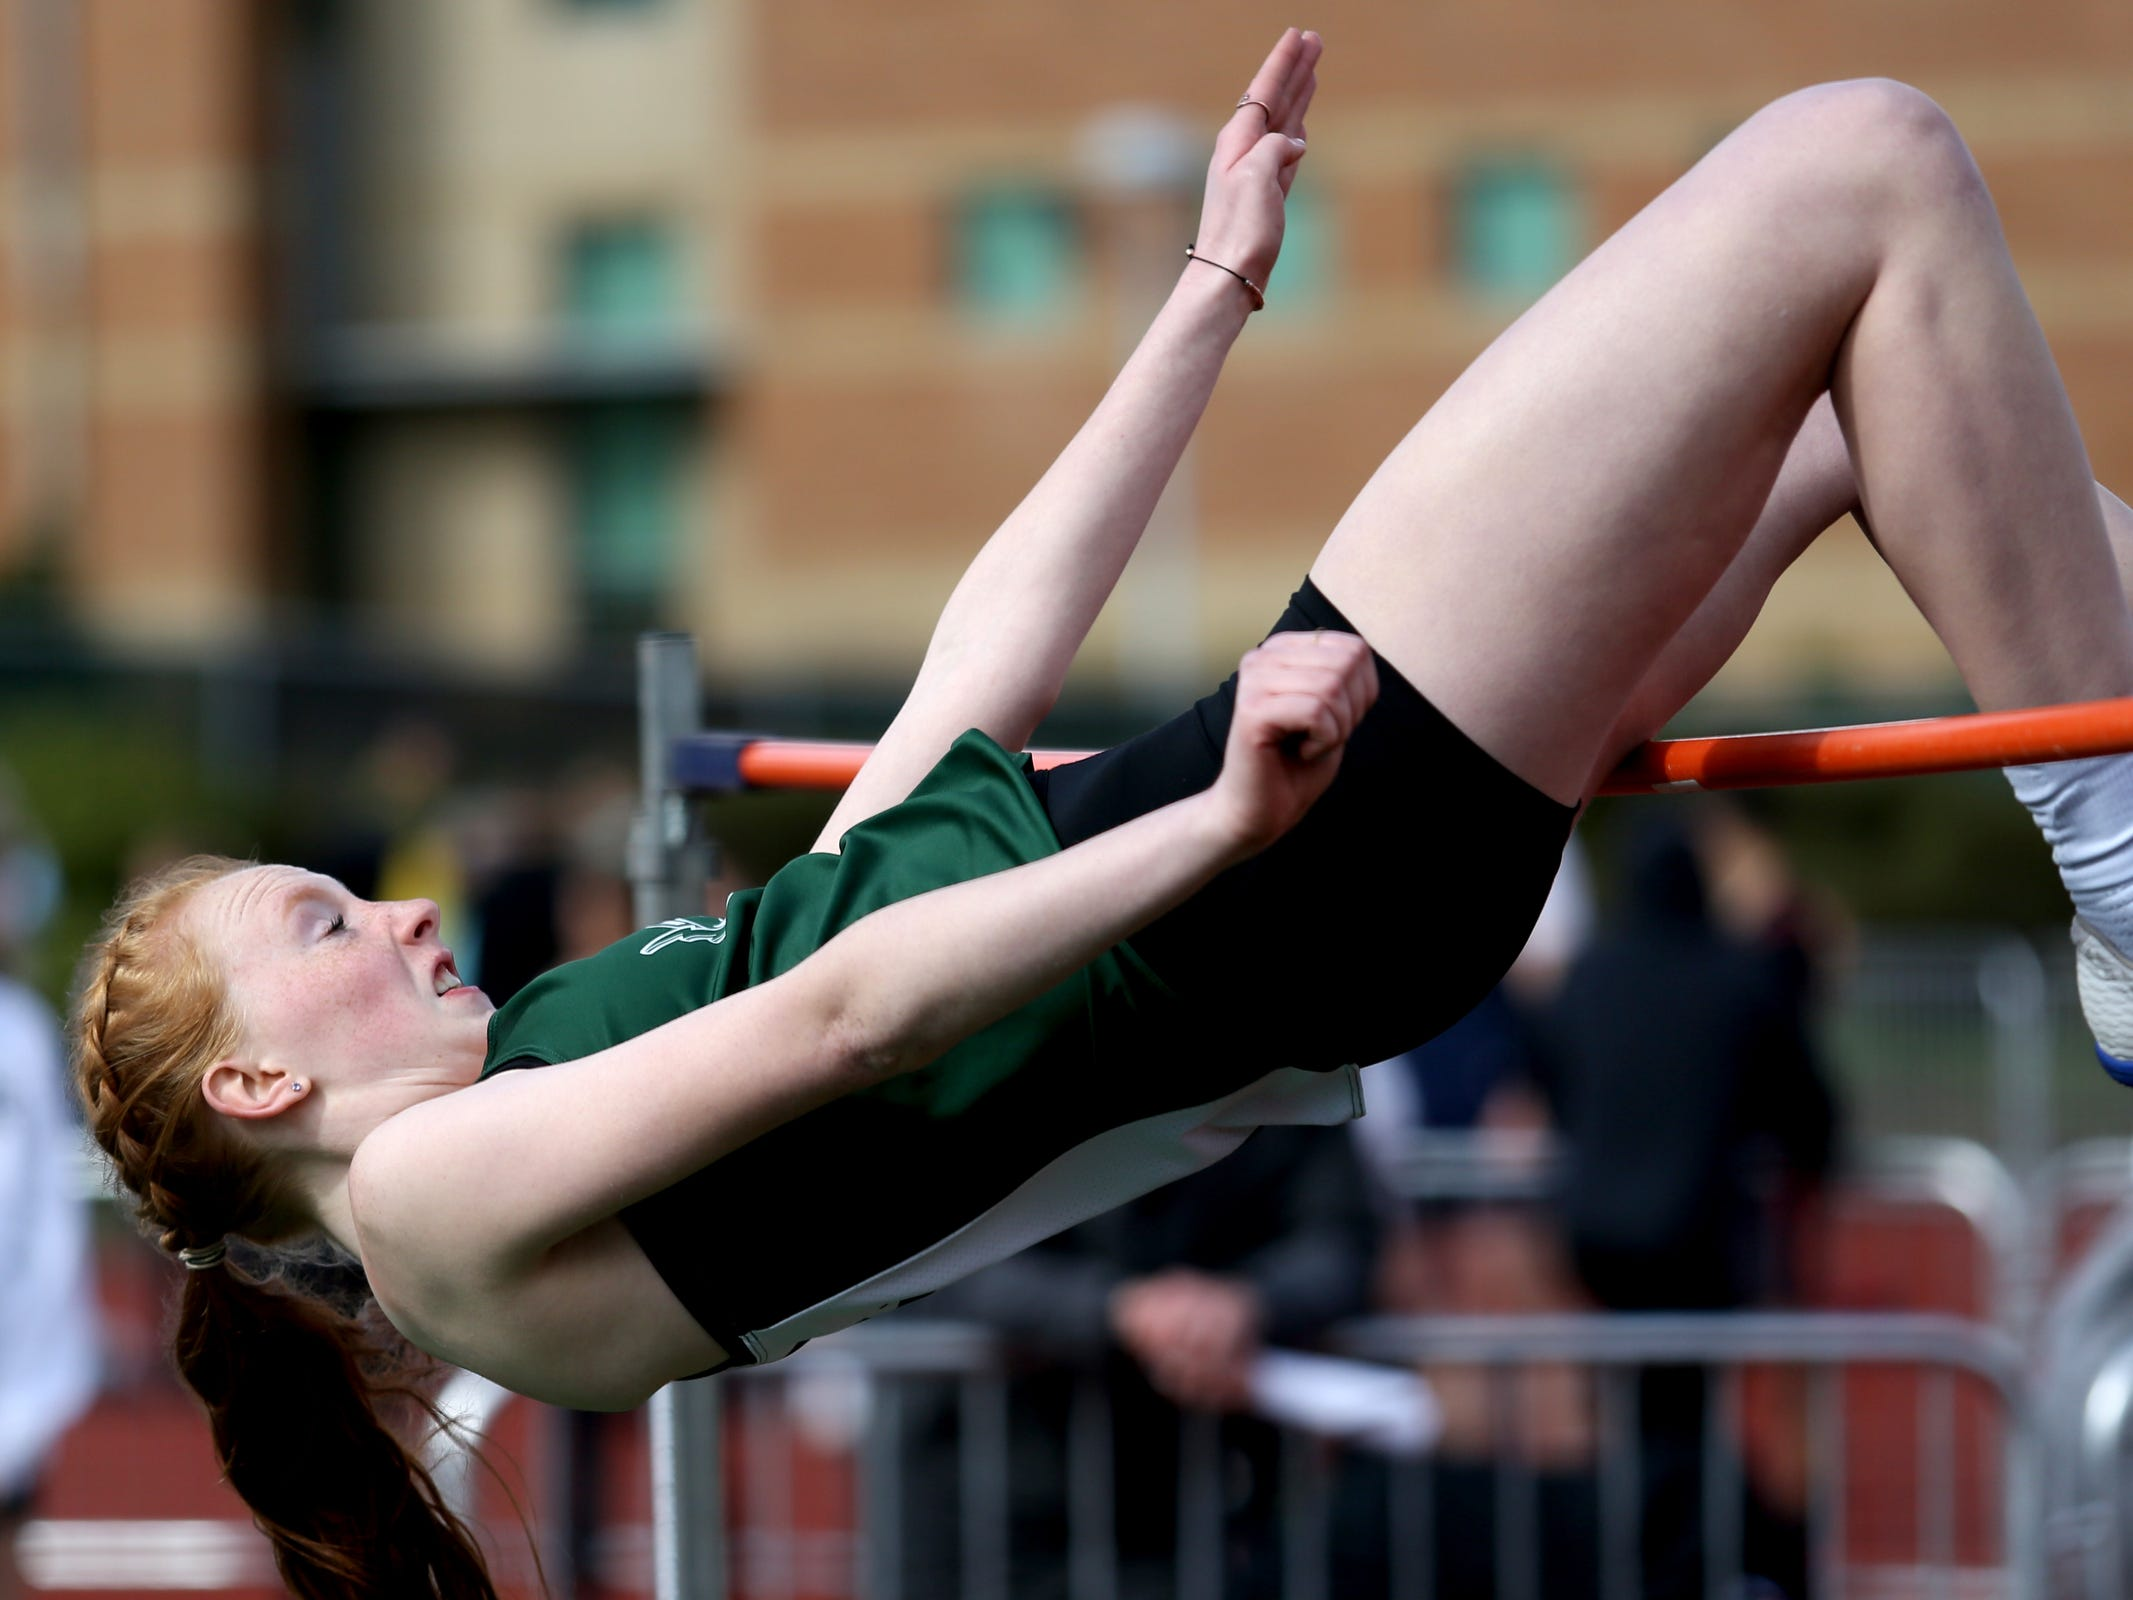 West Salem's Alison Calvin-Stupfel competes in the girls high jump during the Titan Track Classic high school track and field meet at West Salem High School on April 5, 2019.